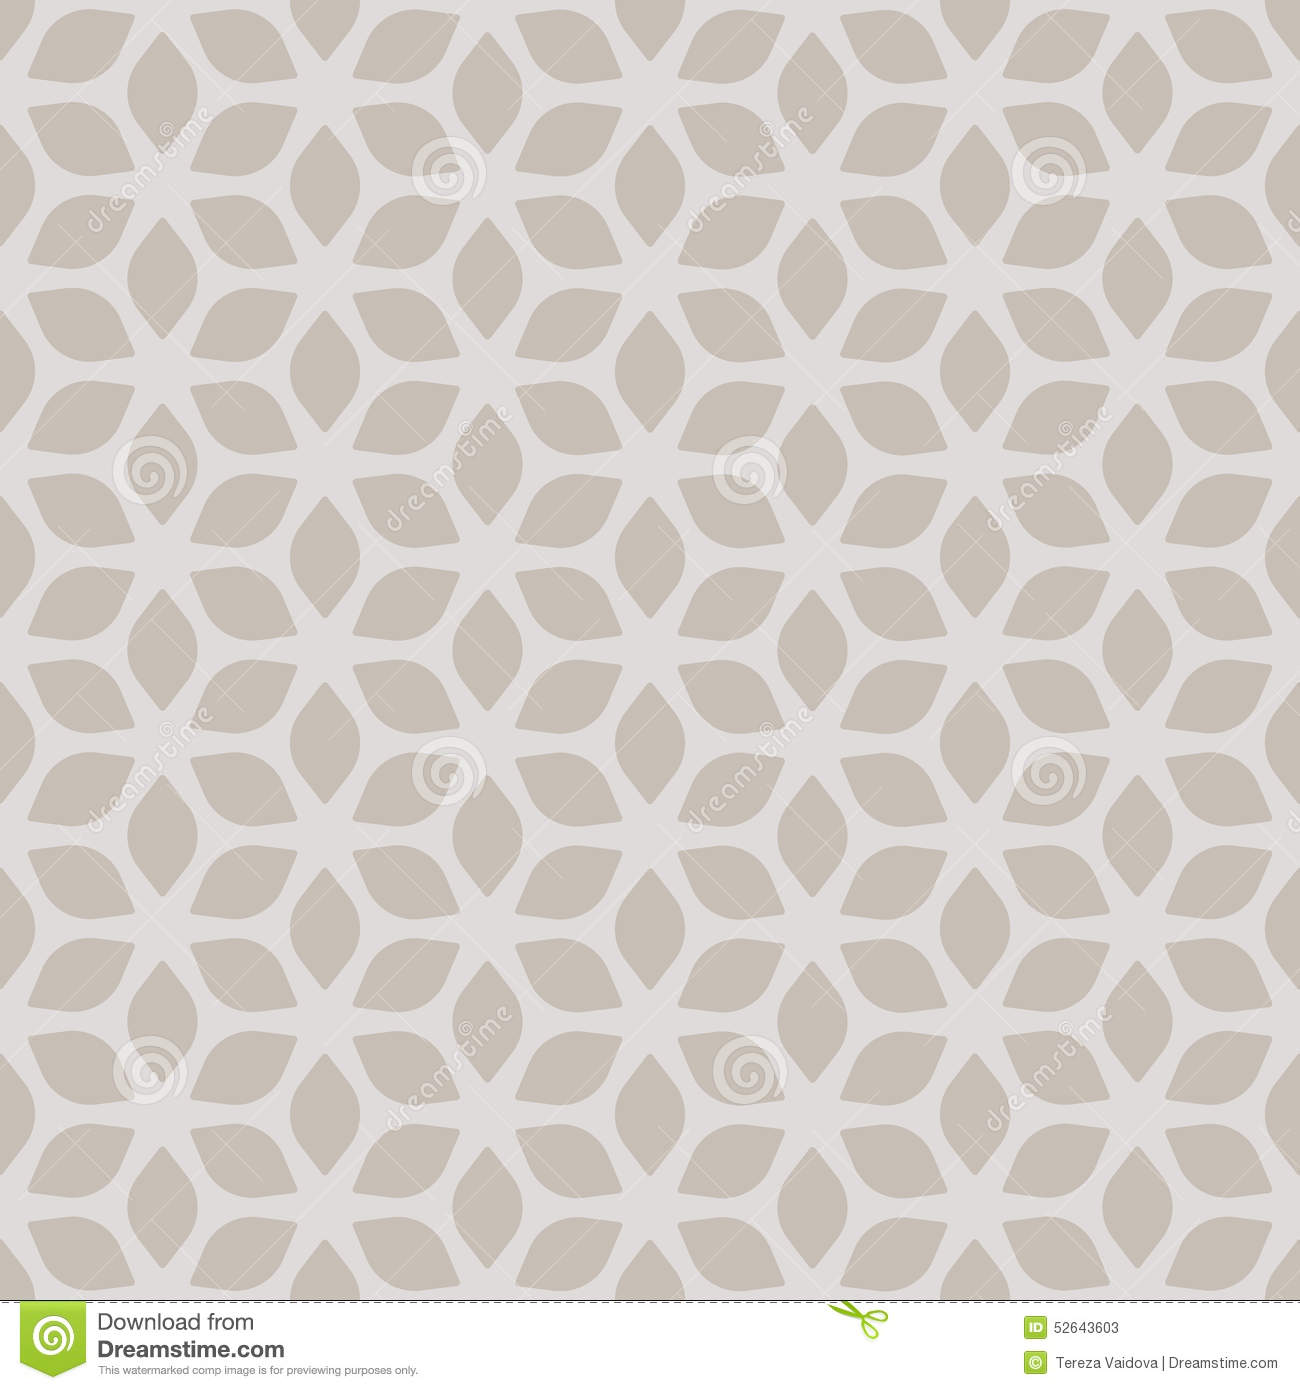 Decorative seamless floral geometric gold beige pattern for Object pool design pattern